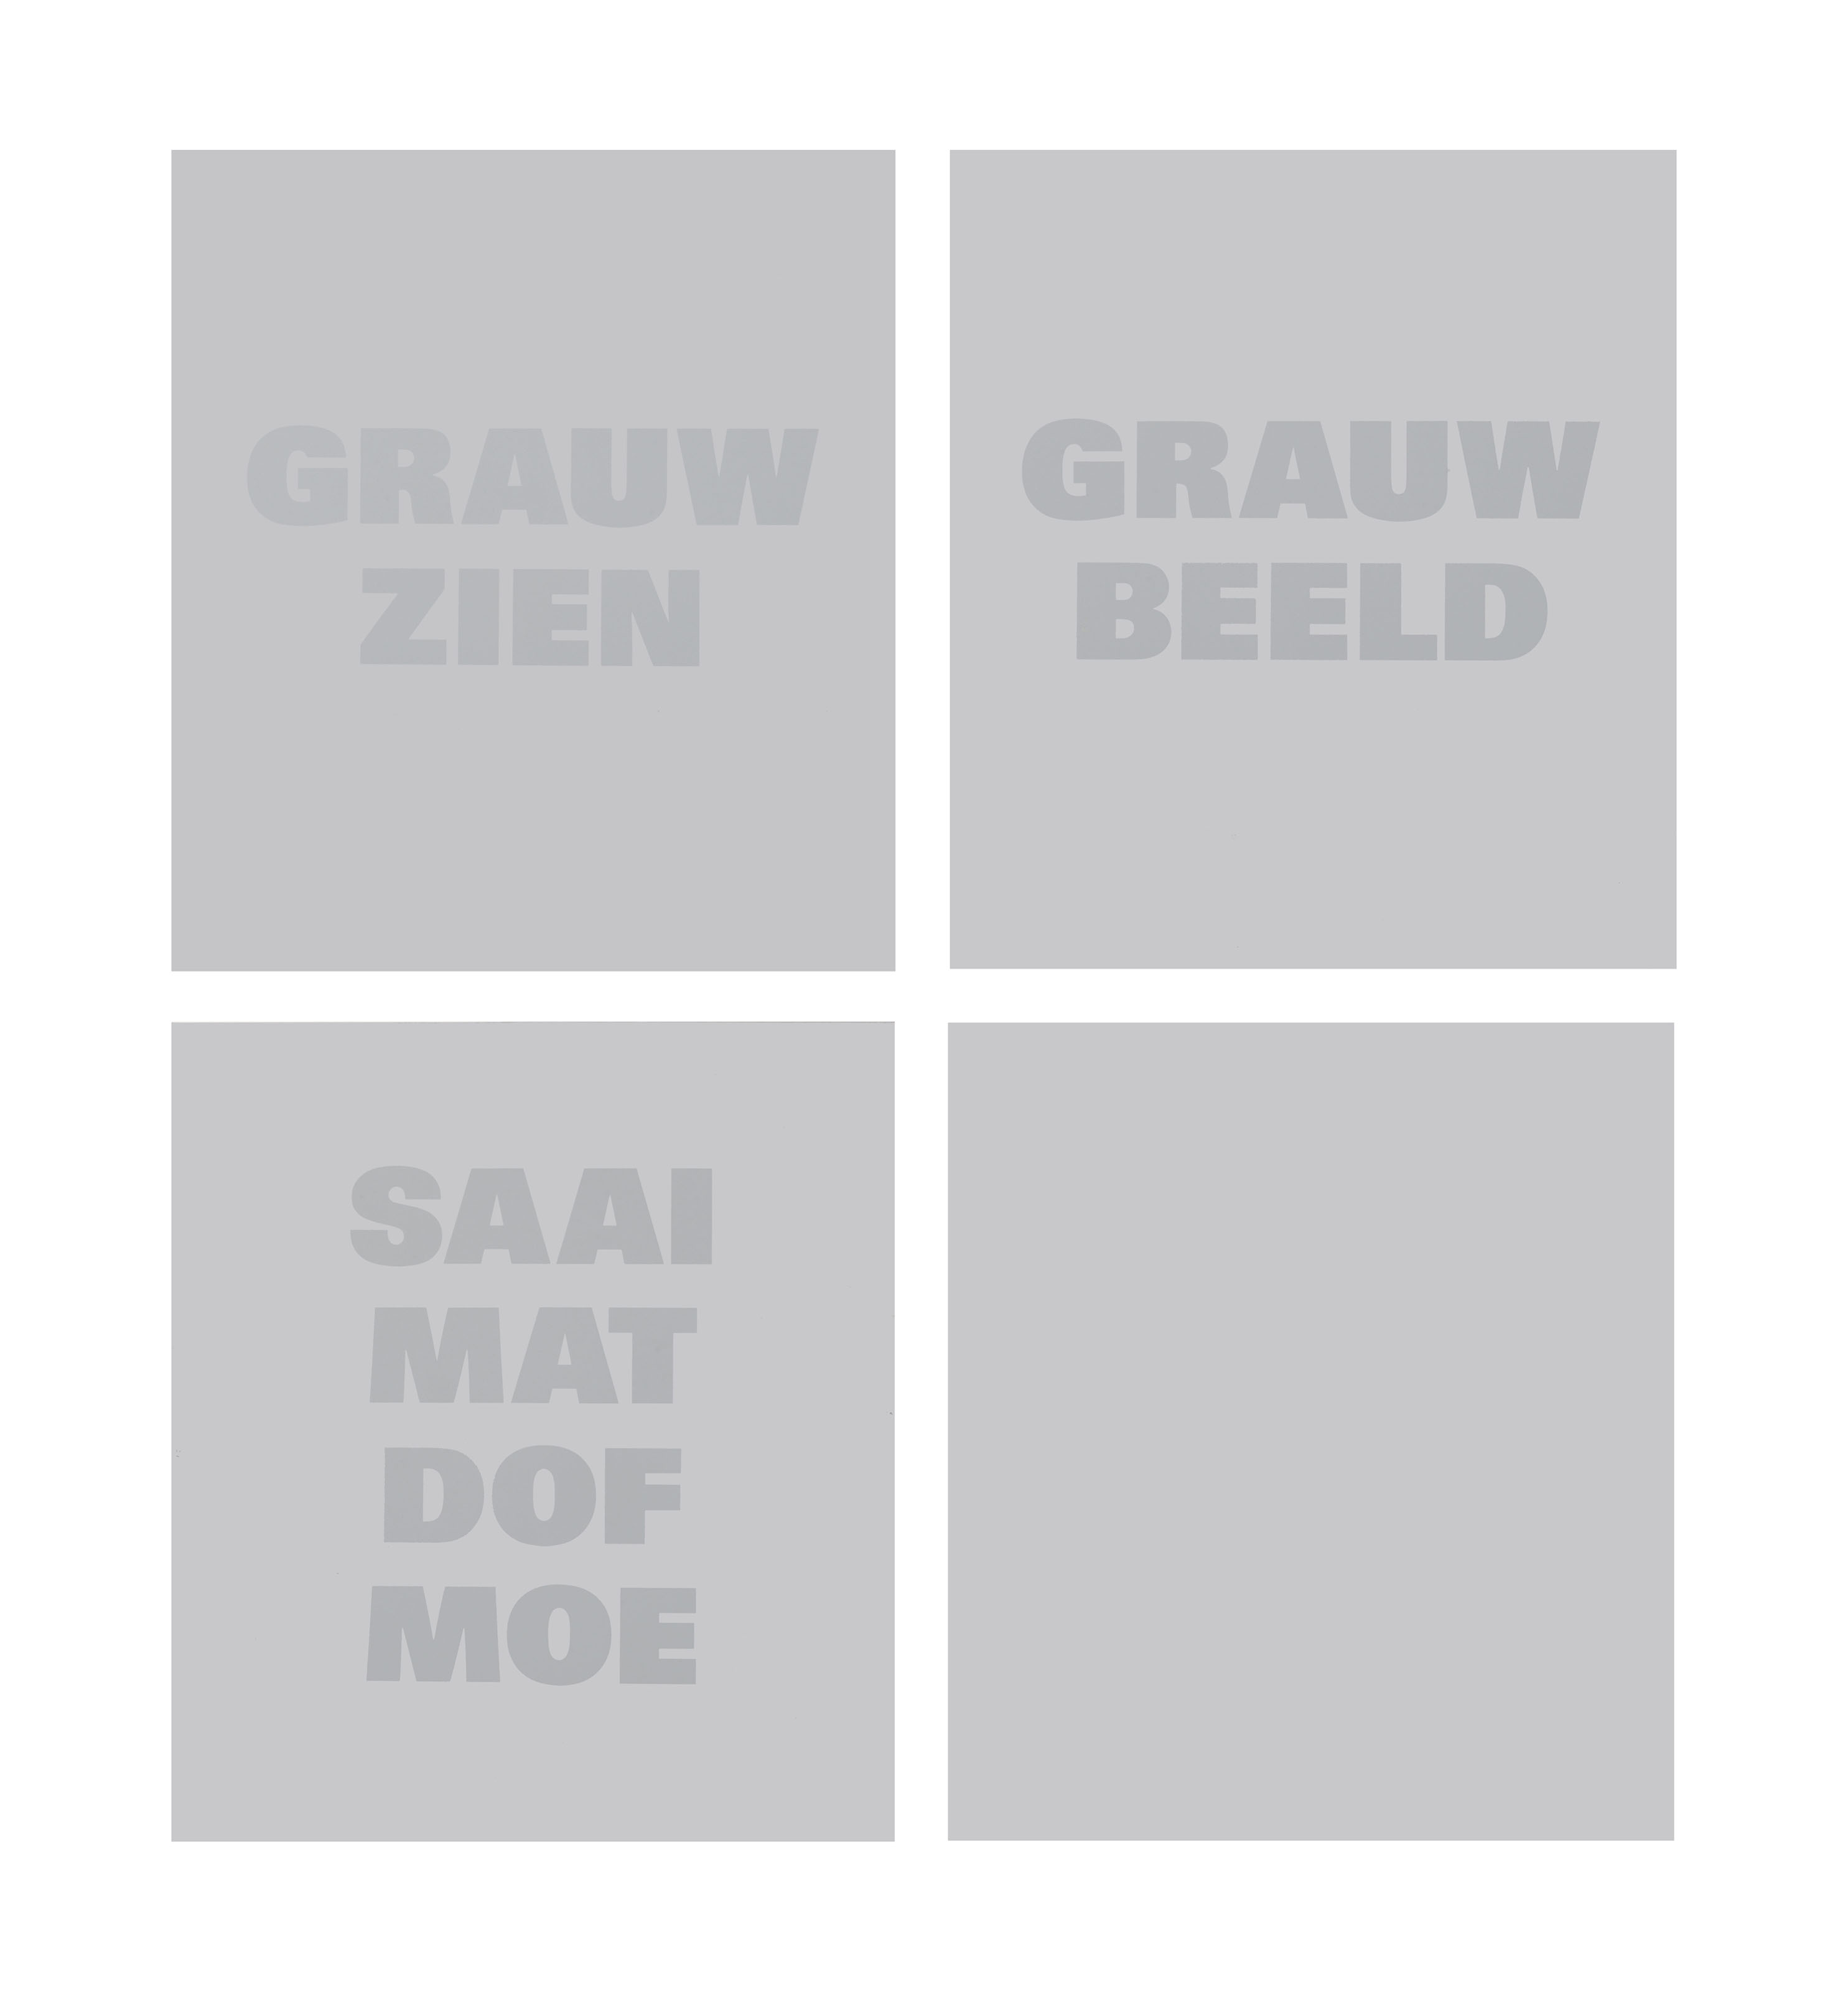 Grauw Zien, Grauw Beeld, Saai Mat Dof Moe (Bleak Look, Bleak Image, Drab Matte Dull Tired)